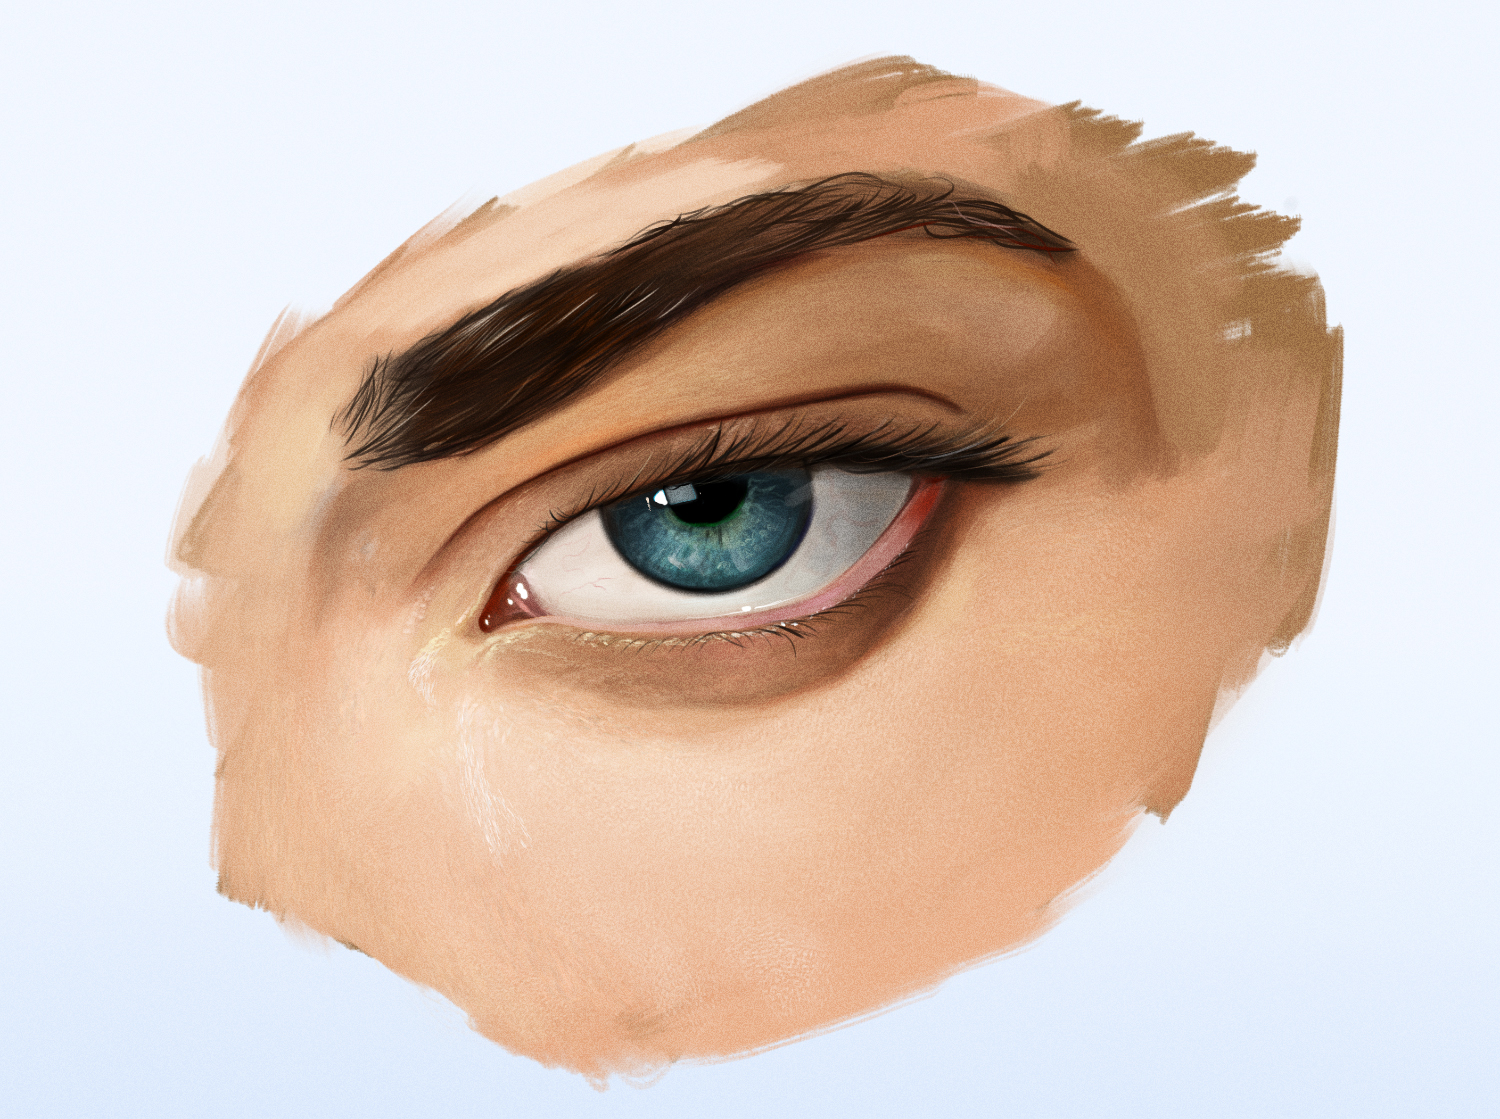 Eye tutorial video by danluvisiart on deviantart eye tutorial video by danluvisiart eye tutorial video by danluvisiart baditri Images